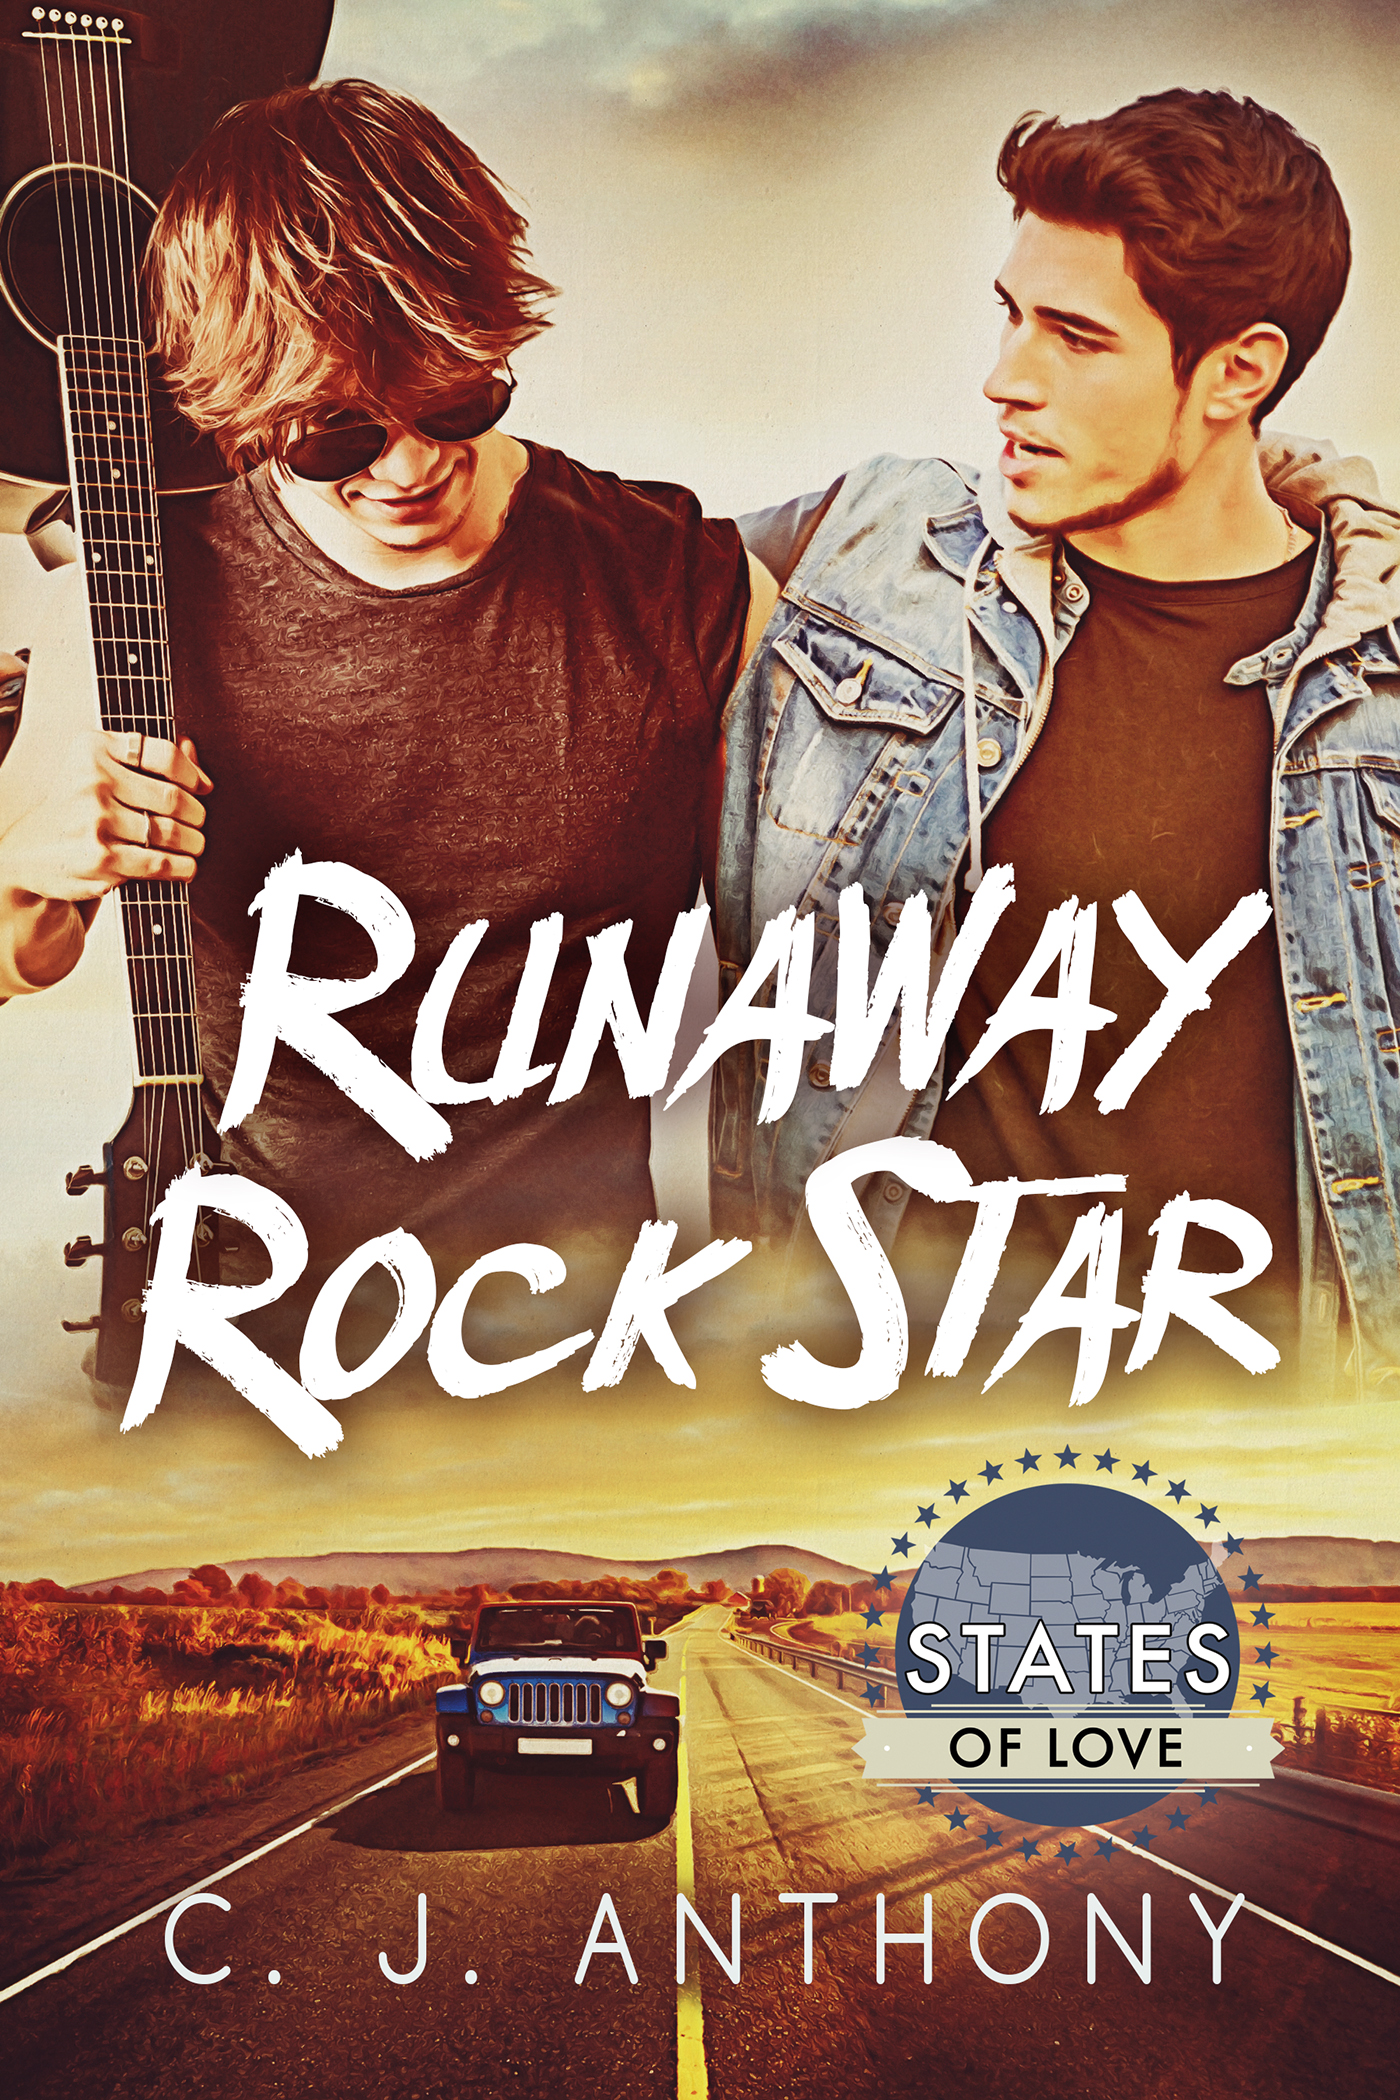 Guest Post: Runaway Rock Star by C.J. Anthony